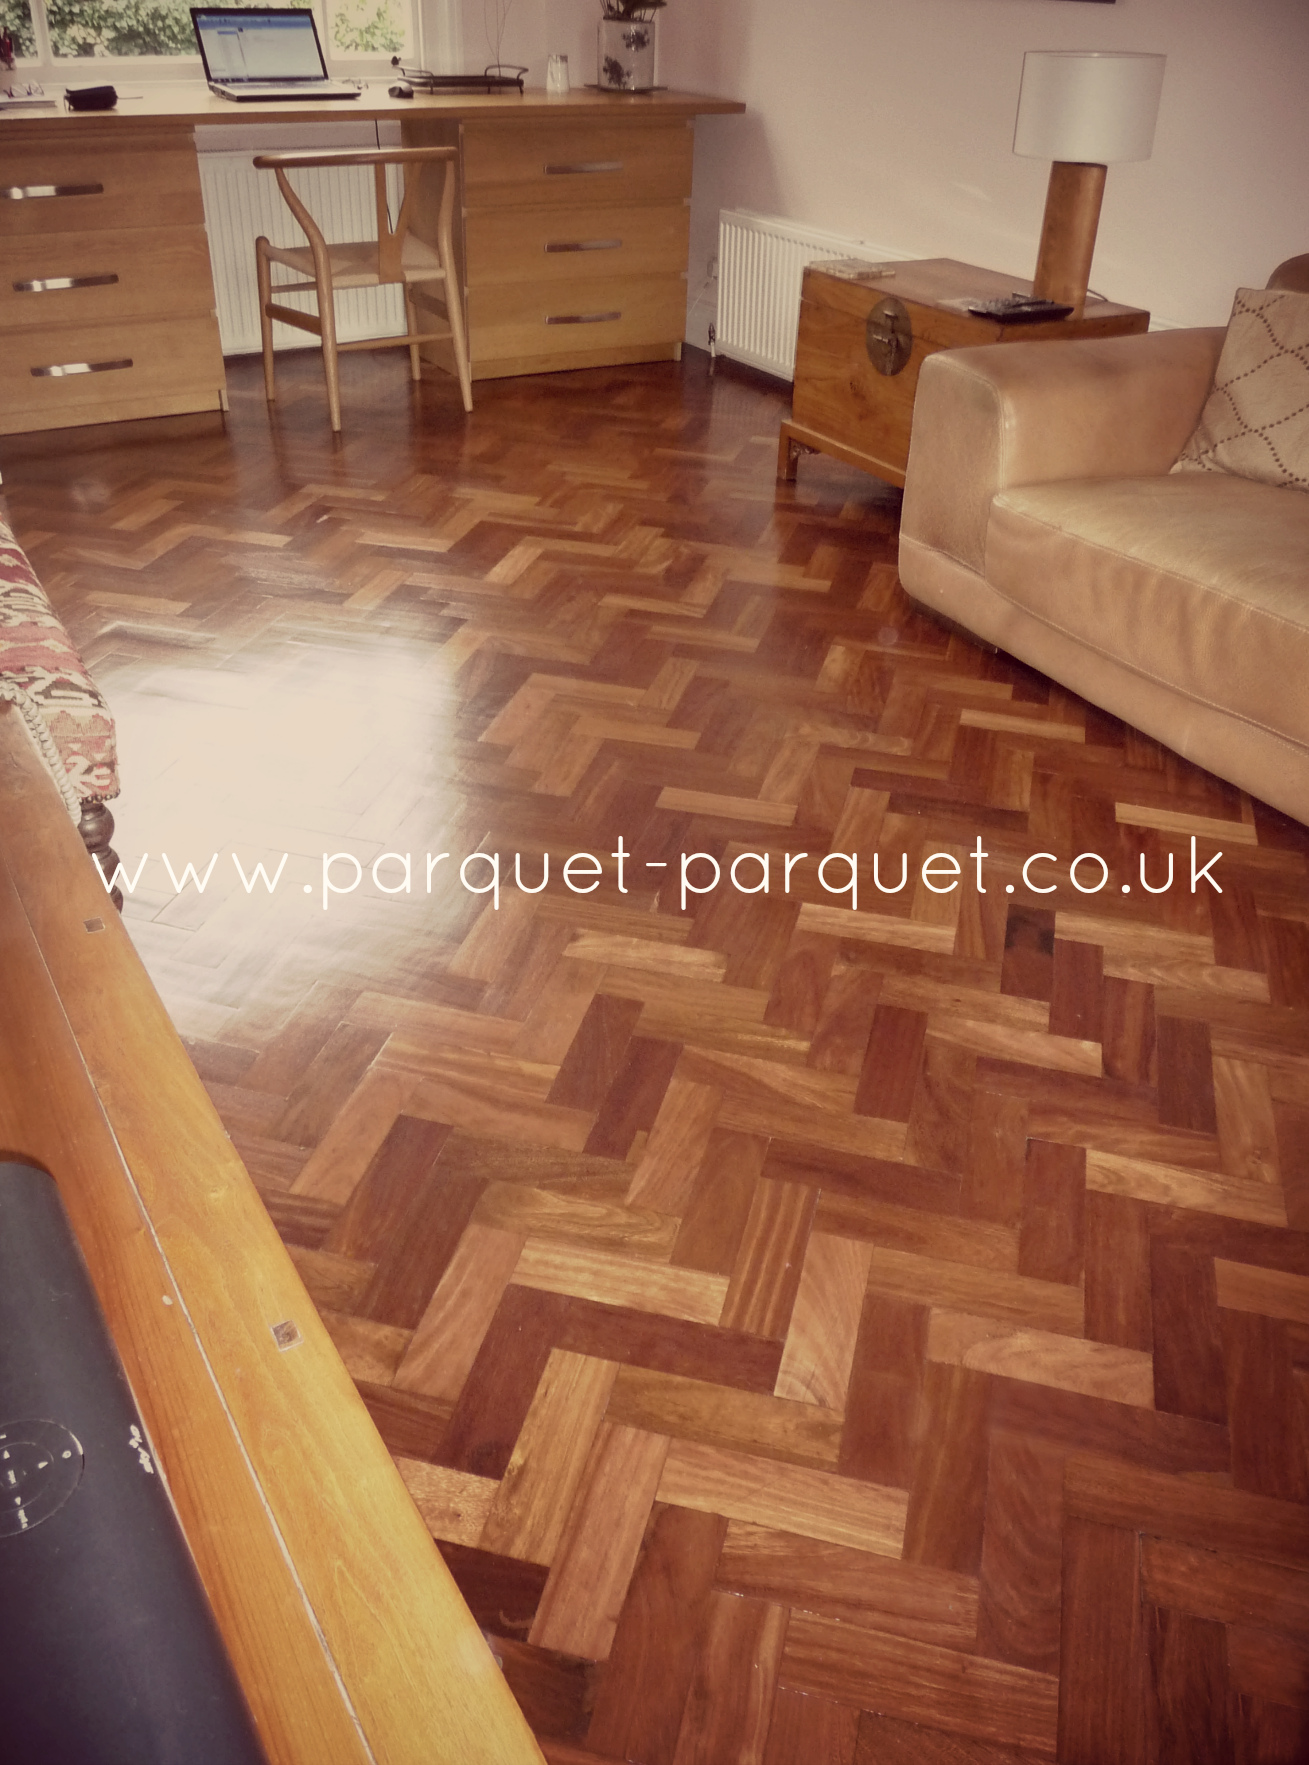 Parquet Flooring Kitchen Or Bathroom · Rhodesian Mahogany Floor London ...